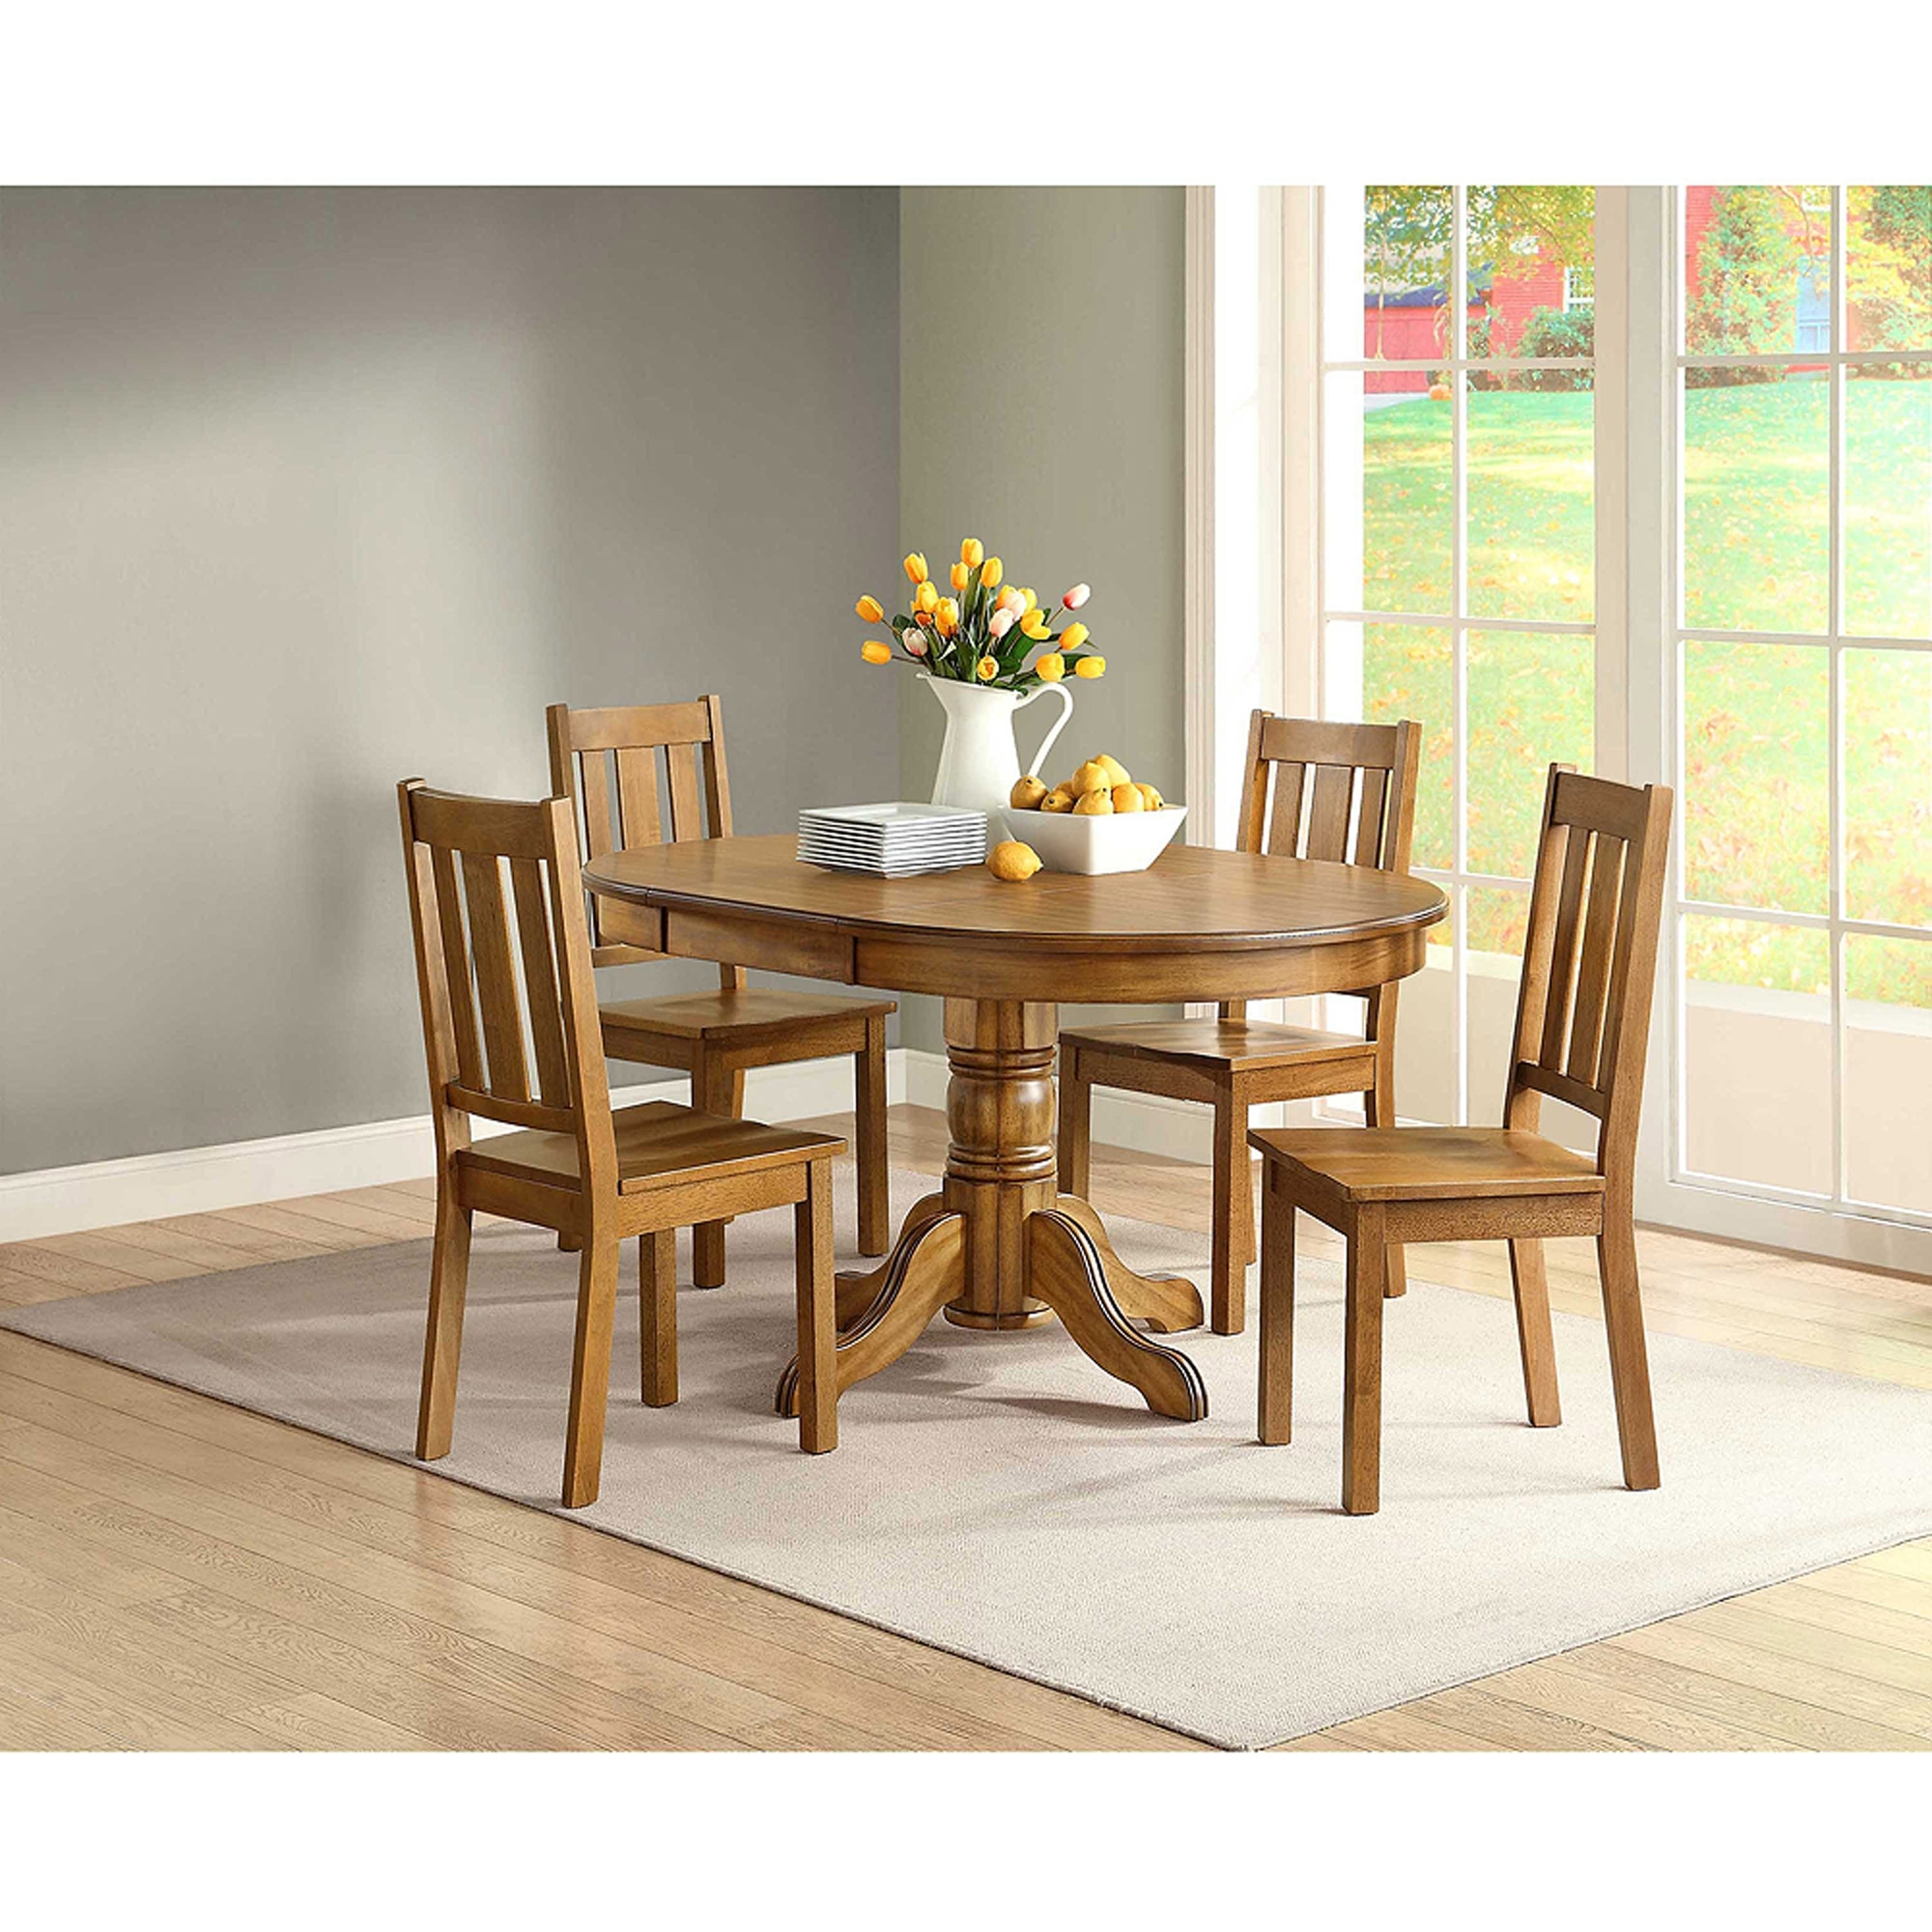 Dining Tables And Chairs Sets With Most Recent Better Homes And Gardens Bankston Dining Chair, Set Of 2, Honey (Gallery 25 of 25)